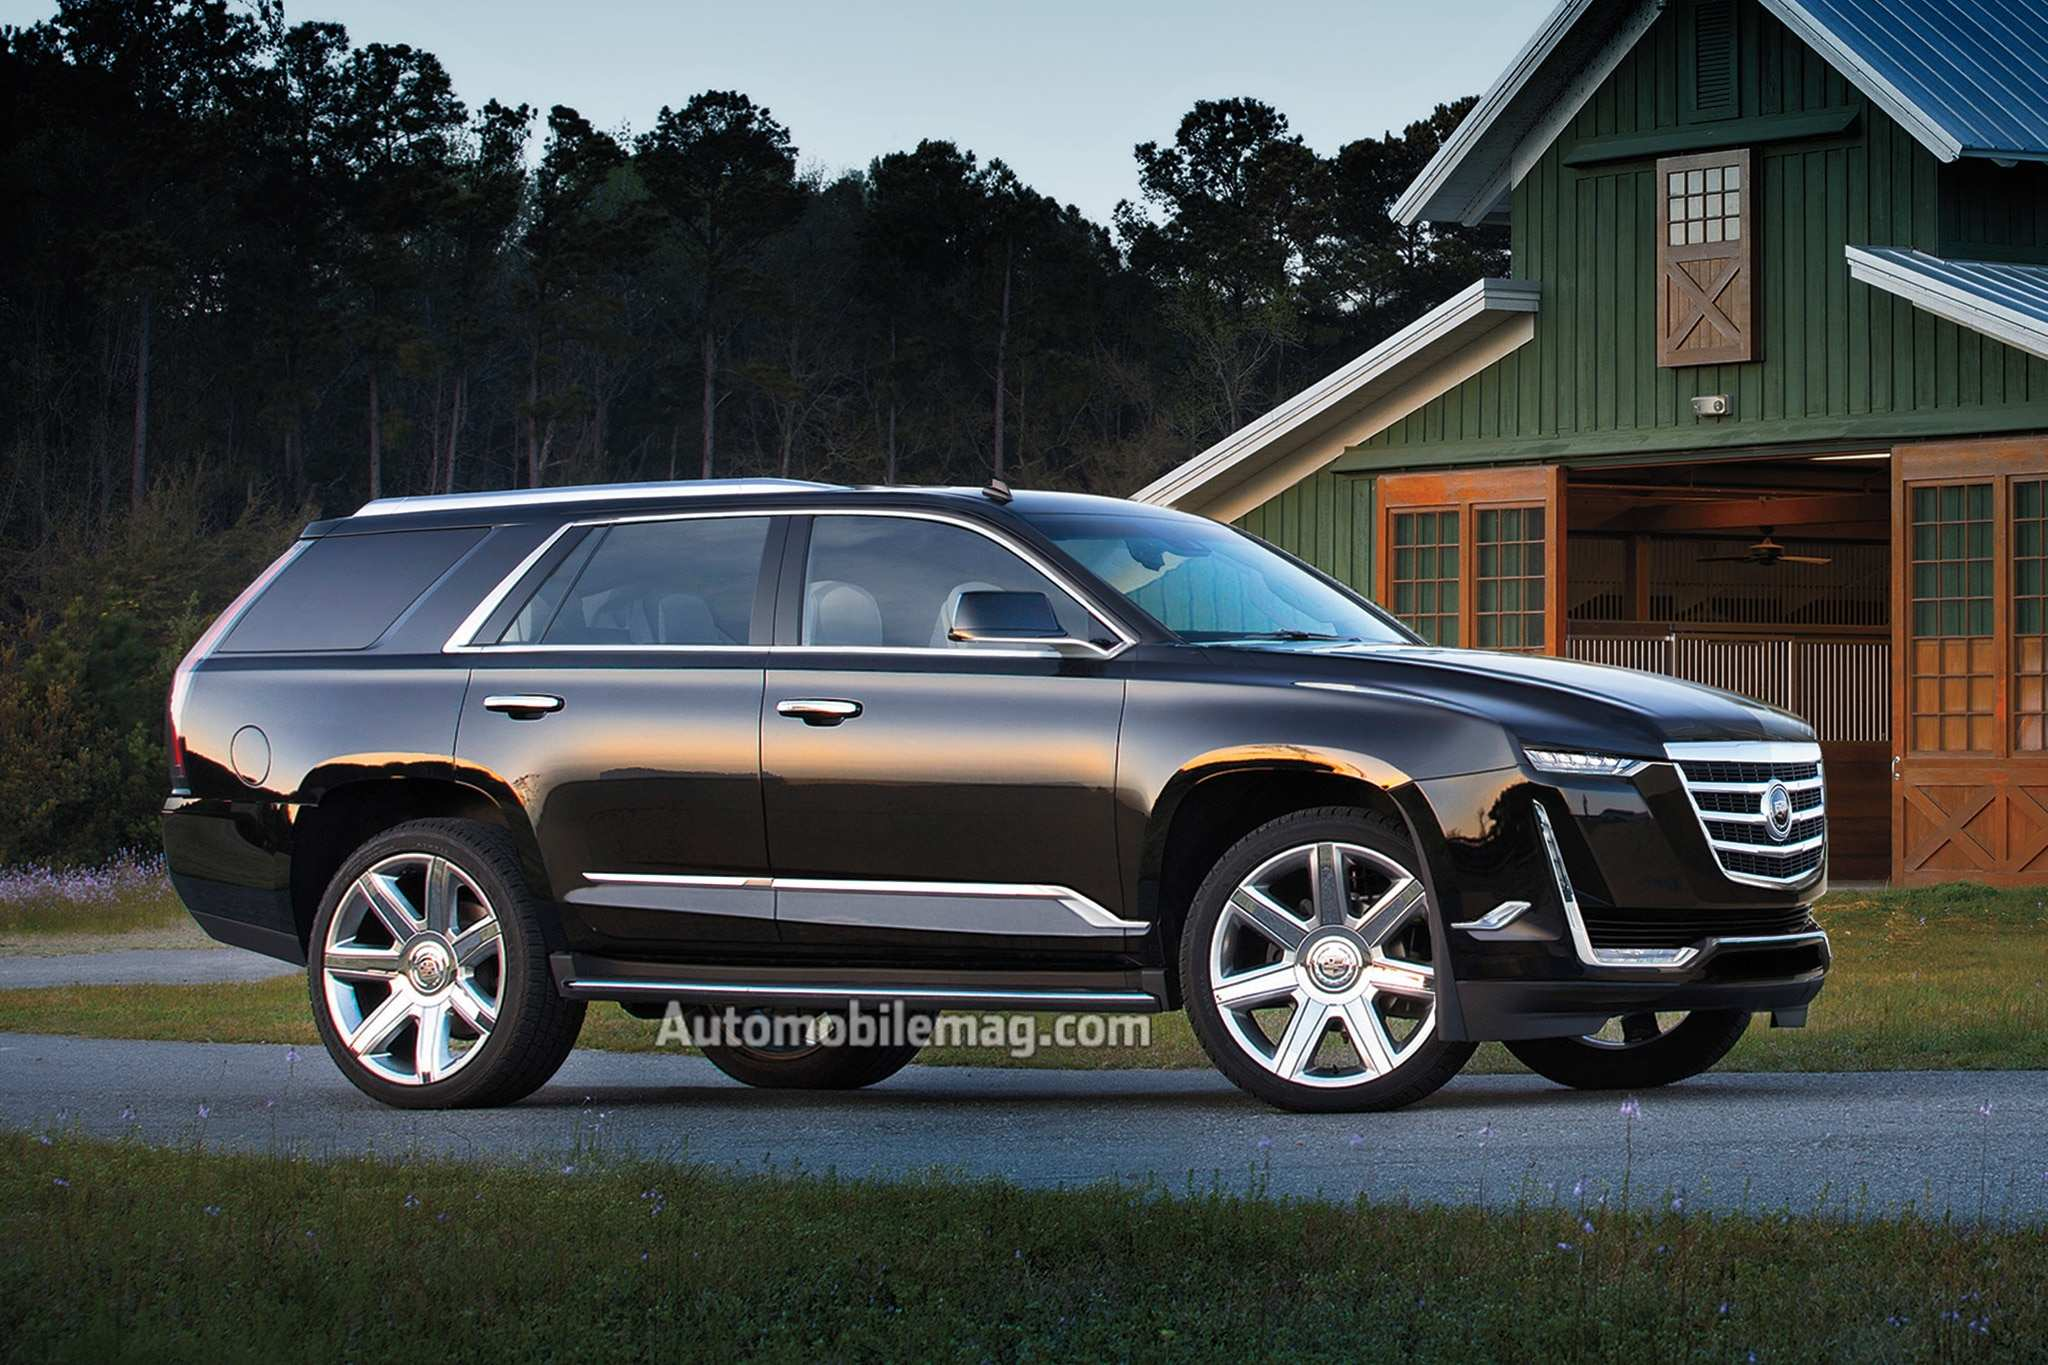 88 All New 2020 Cadillac Lineup Price and Review by 2020 Cadillac Lineup